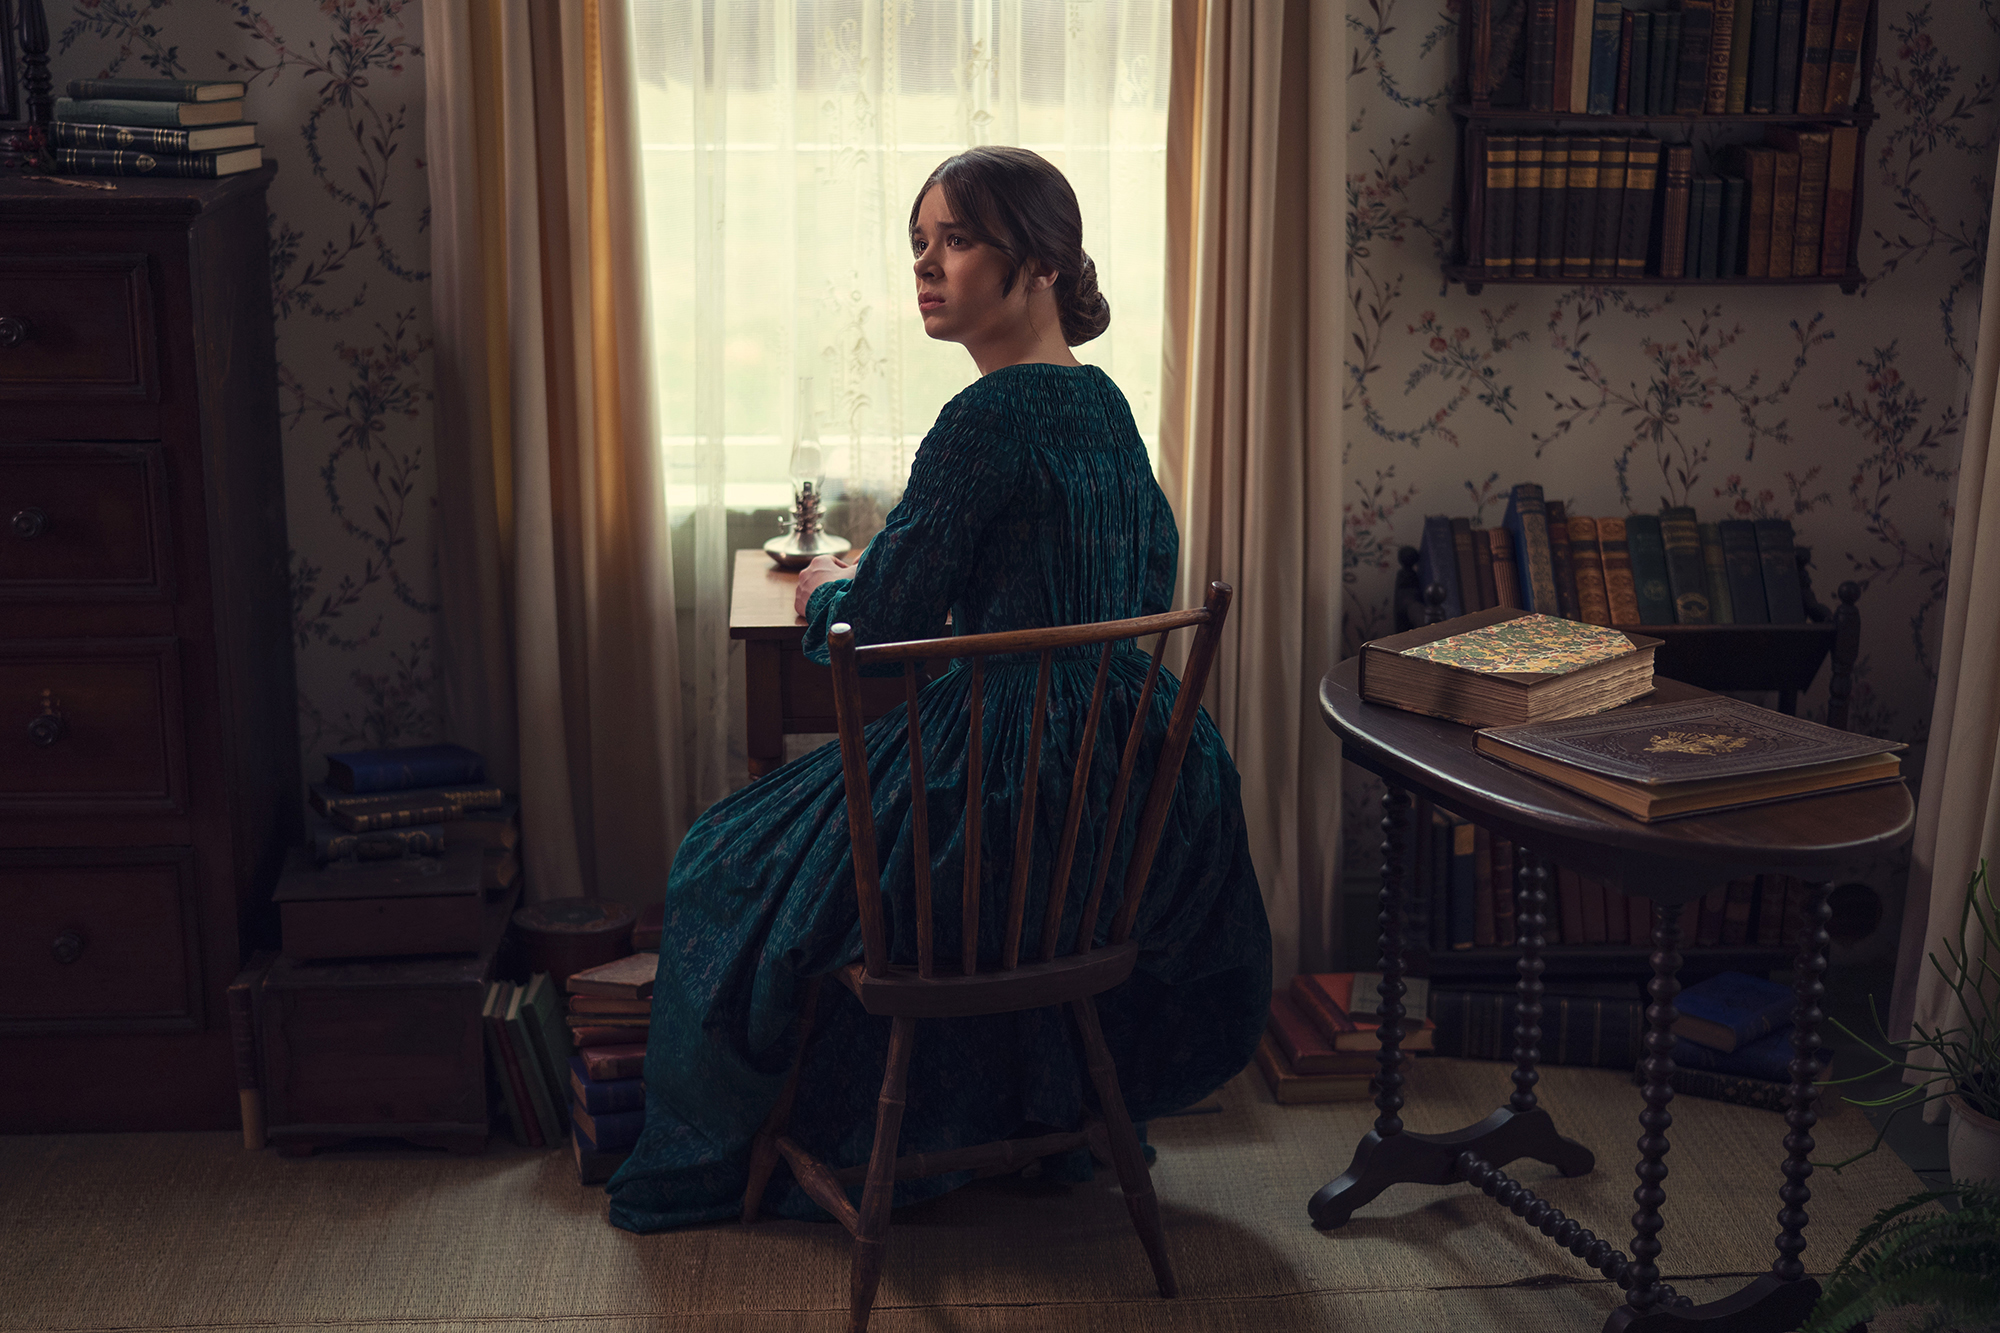 Hailee Steinfeld as Emily Dickinson wears a dress and sits at a desk in a dim room with her back to the camera.